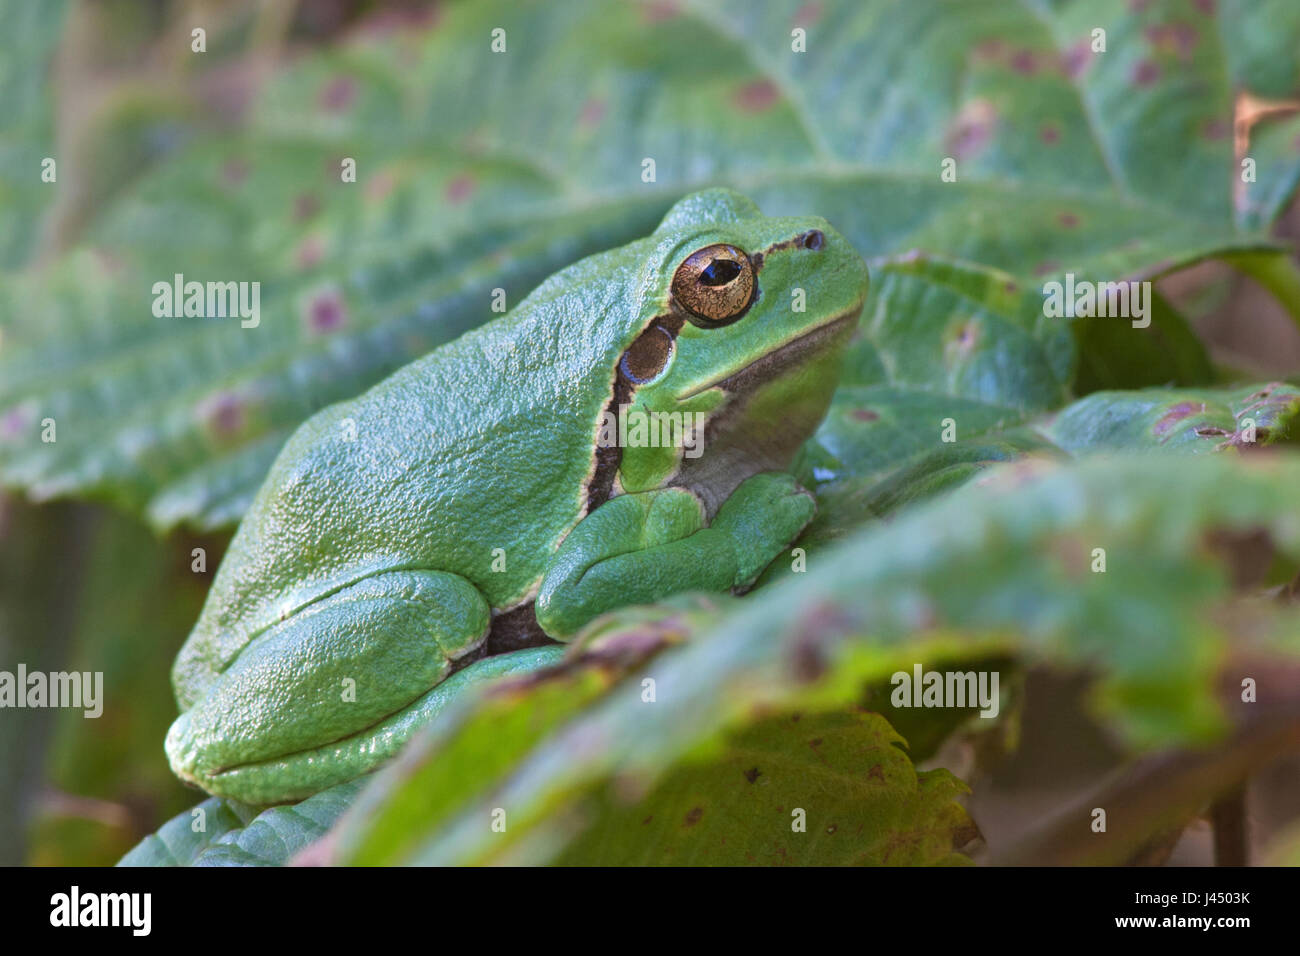 photo of a common tree frog (Hyla arborea) on a leaf Stock Photo